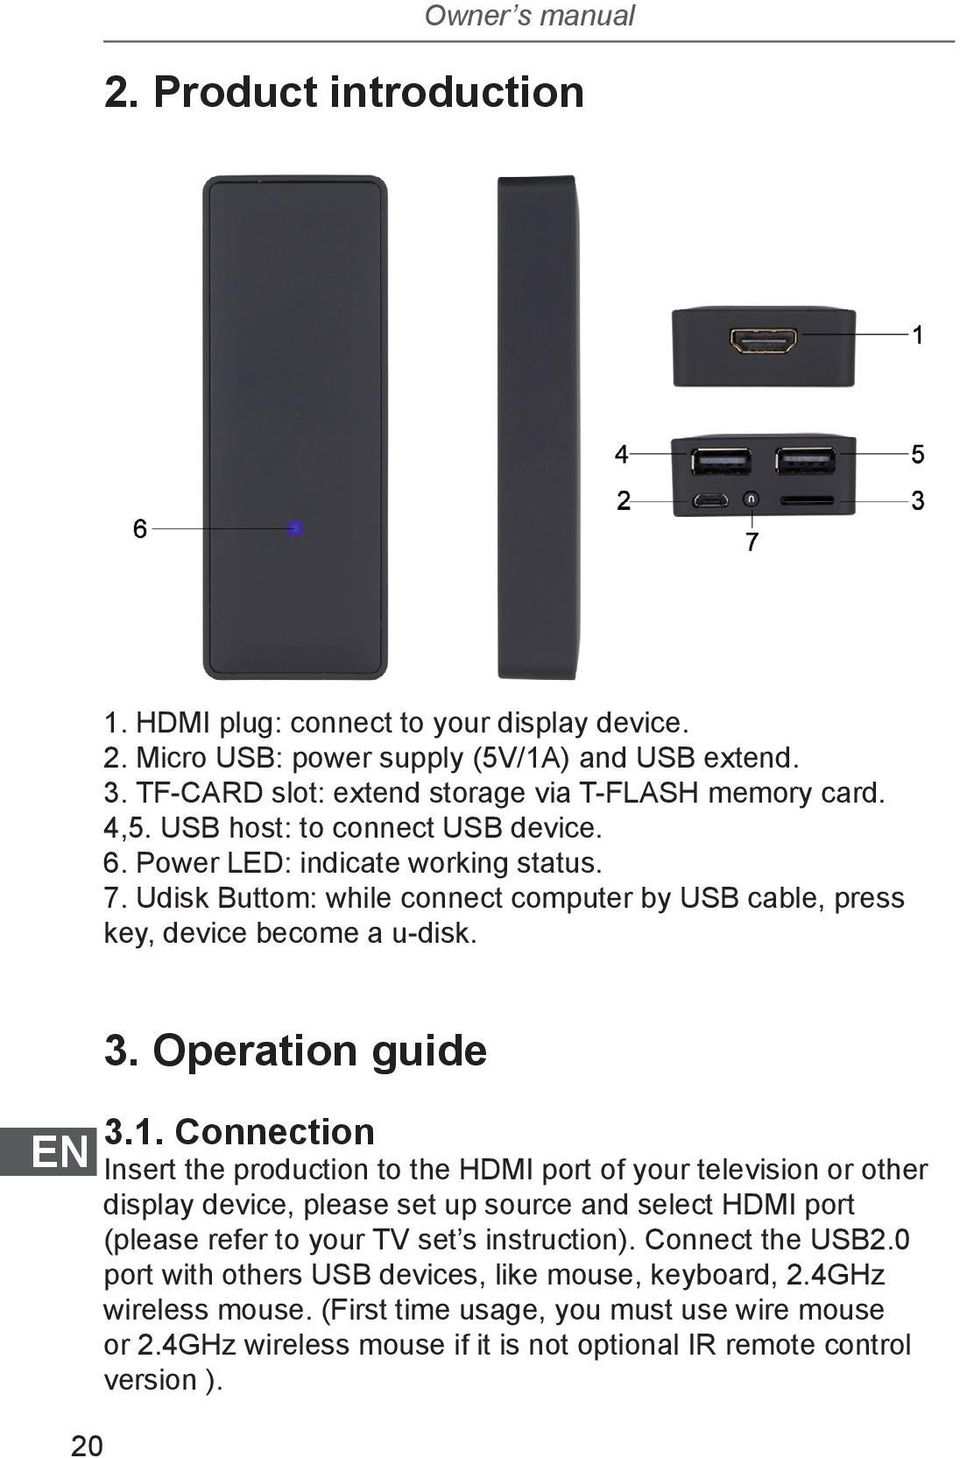 Connection Insert the production to the HDMI port of your television or other display device, please set up source and select HDMI port (please refer to your TV set s instruction).